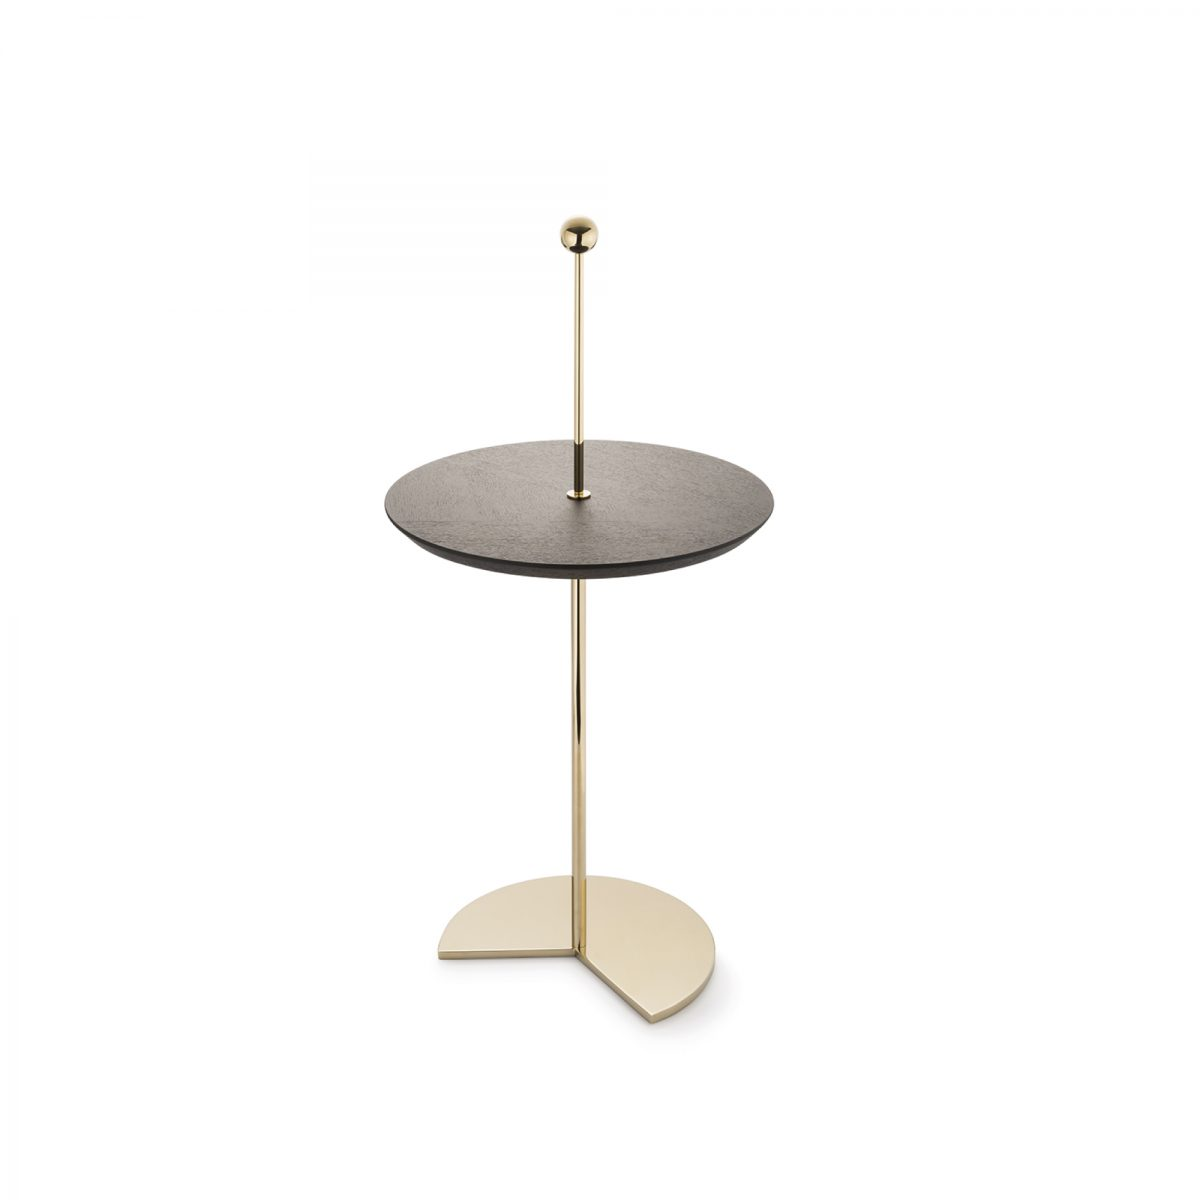 1-off_the_moon_06_tables_side_tables_black